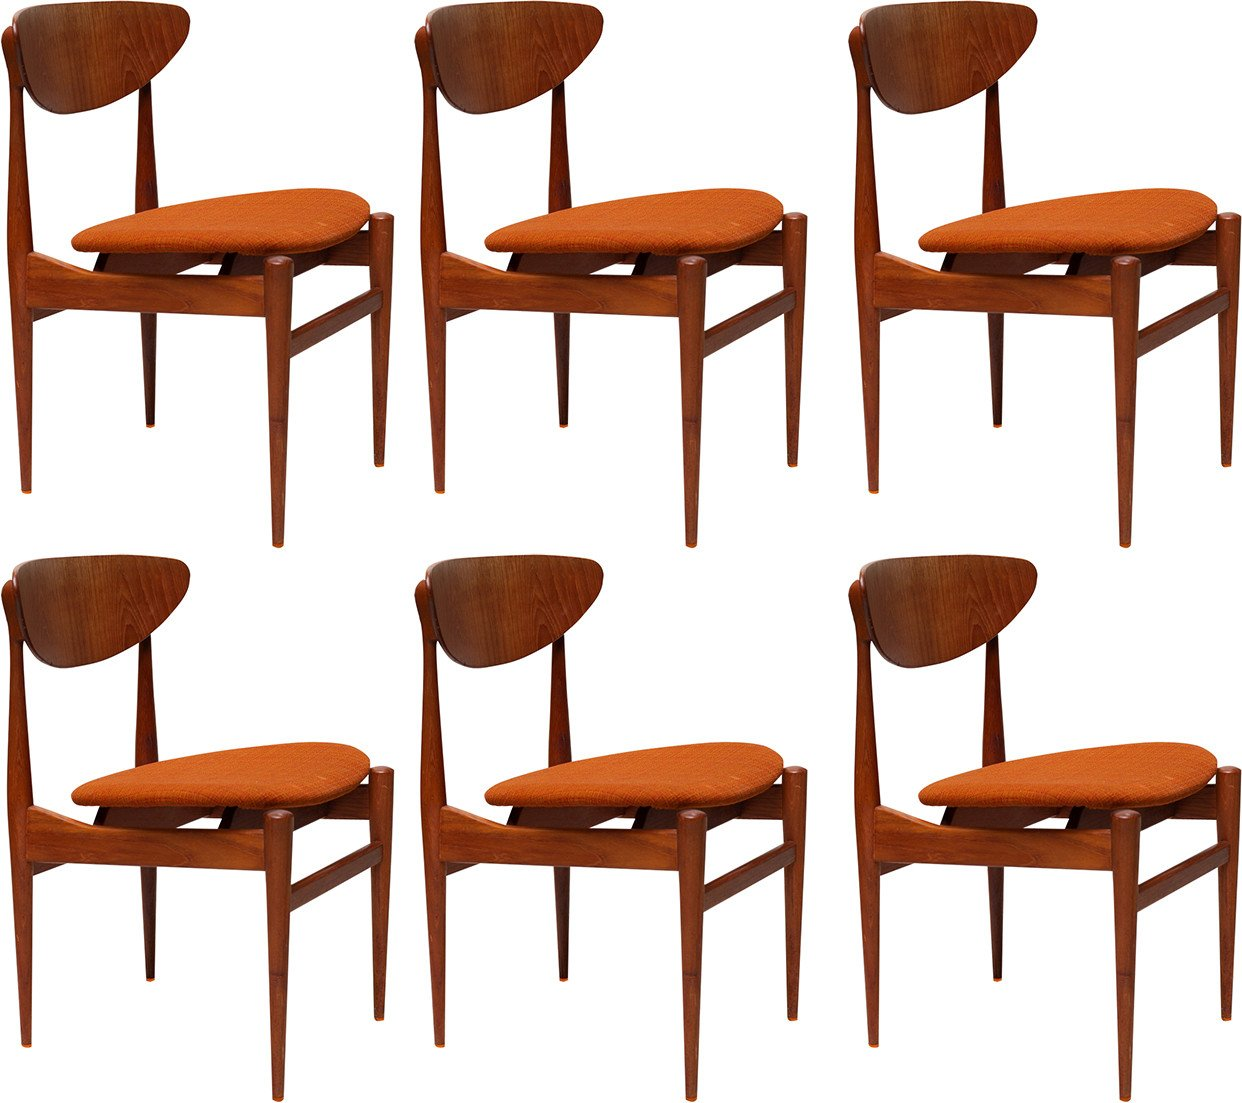 Set of Six Chairs, Denmark, 1970s